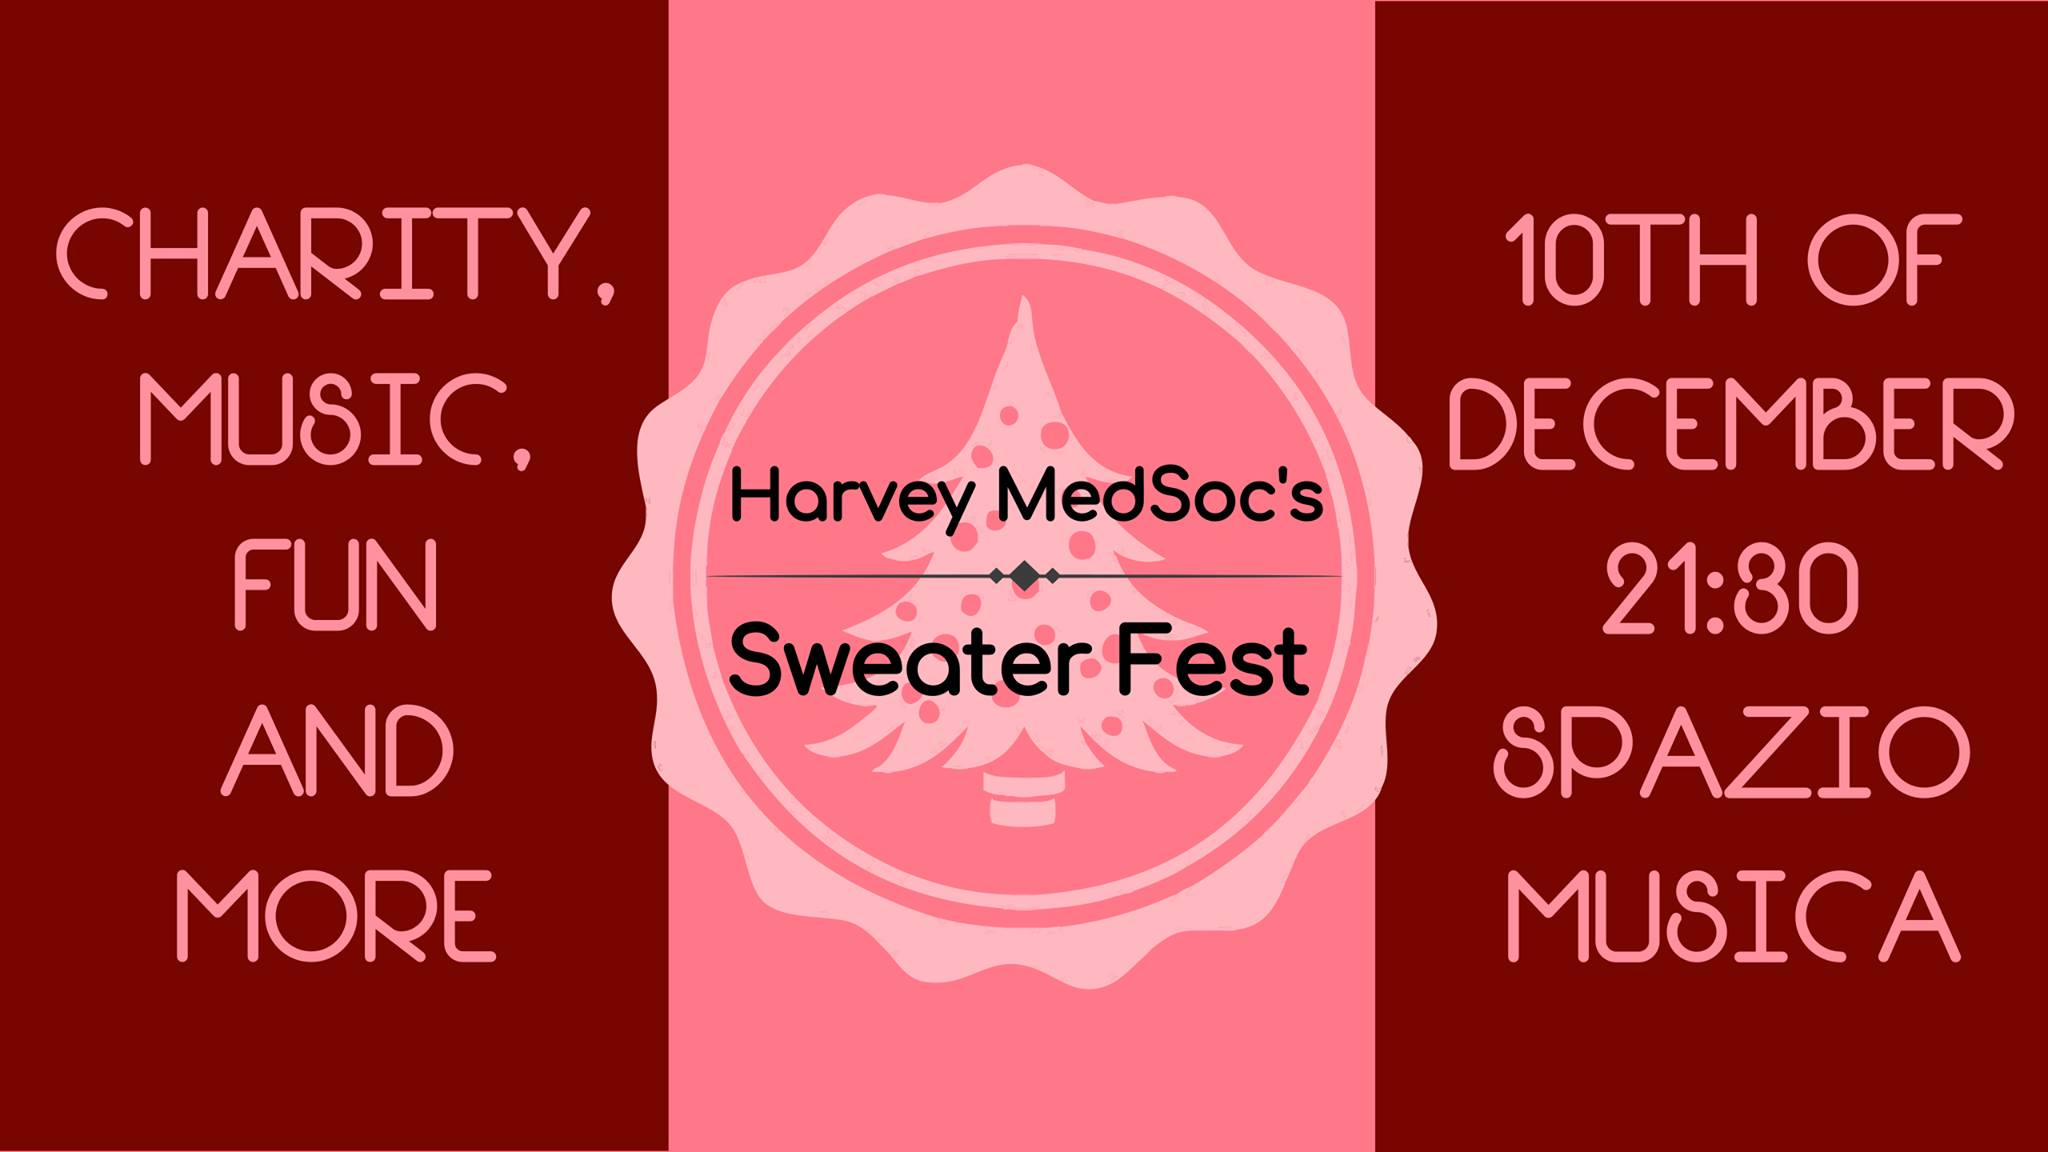 Harvey MedSoc's Sweater Fest